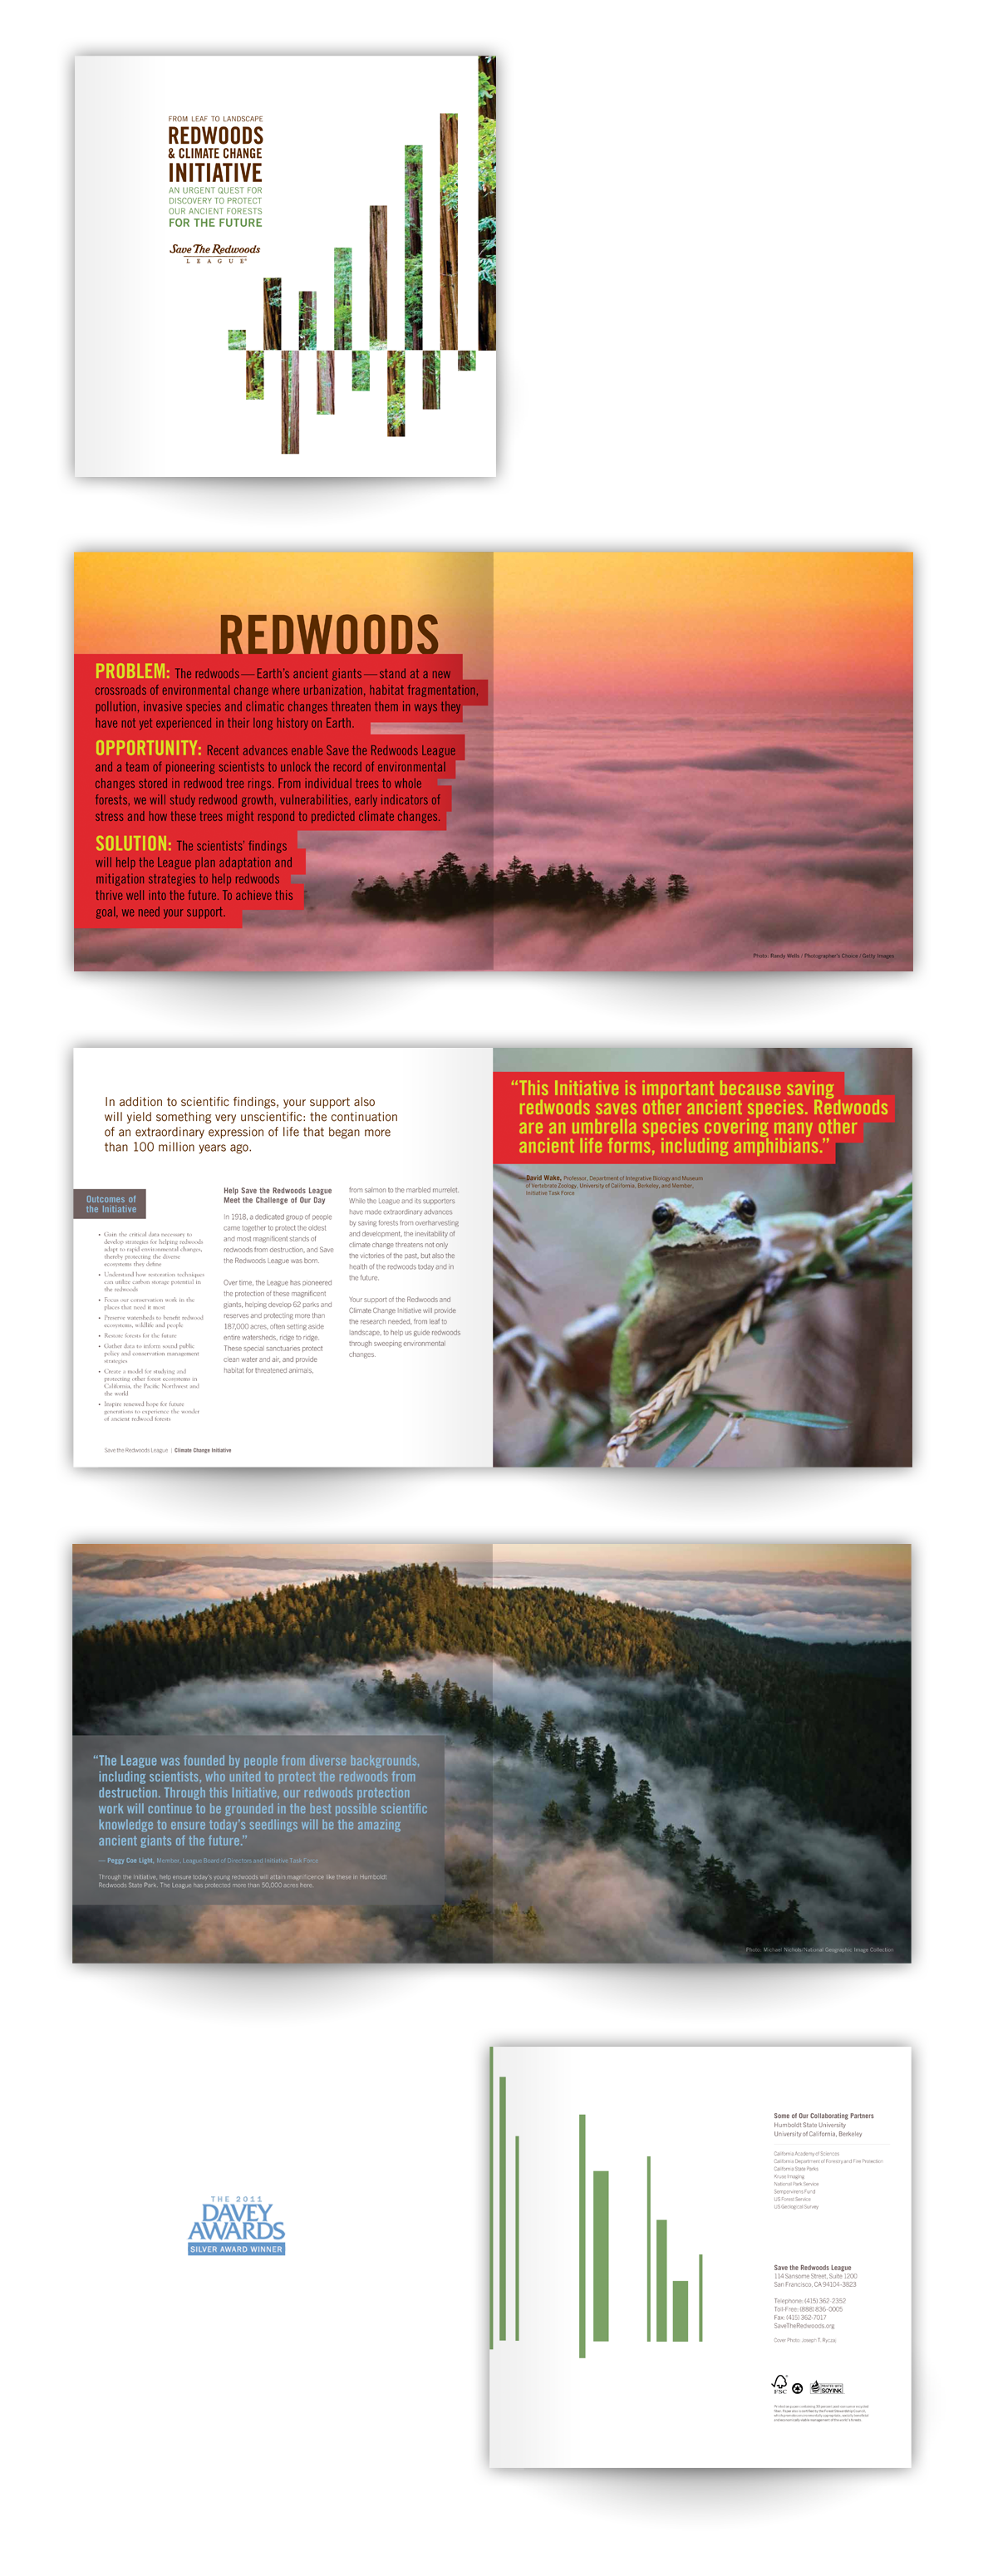 award winning brochure designs - project6 design a bay area branding and design firm wins